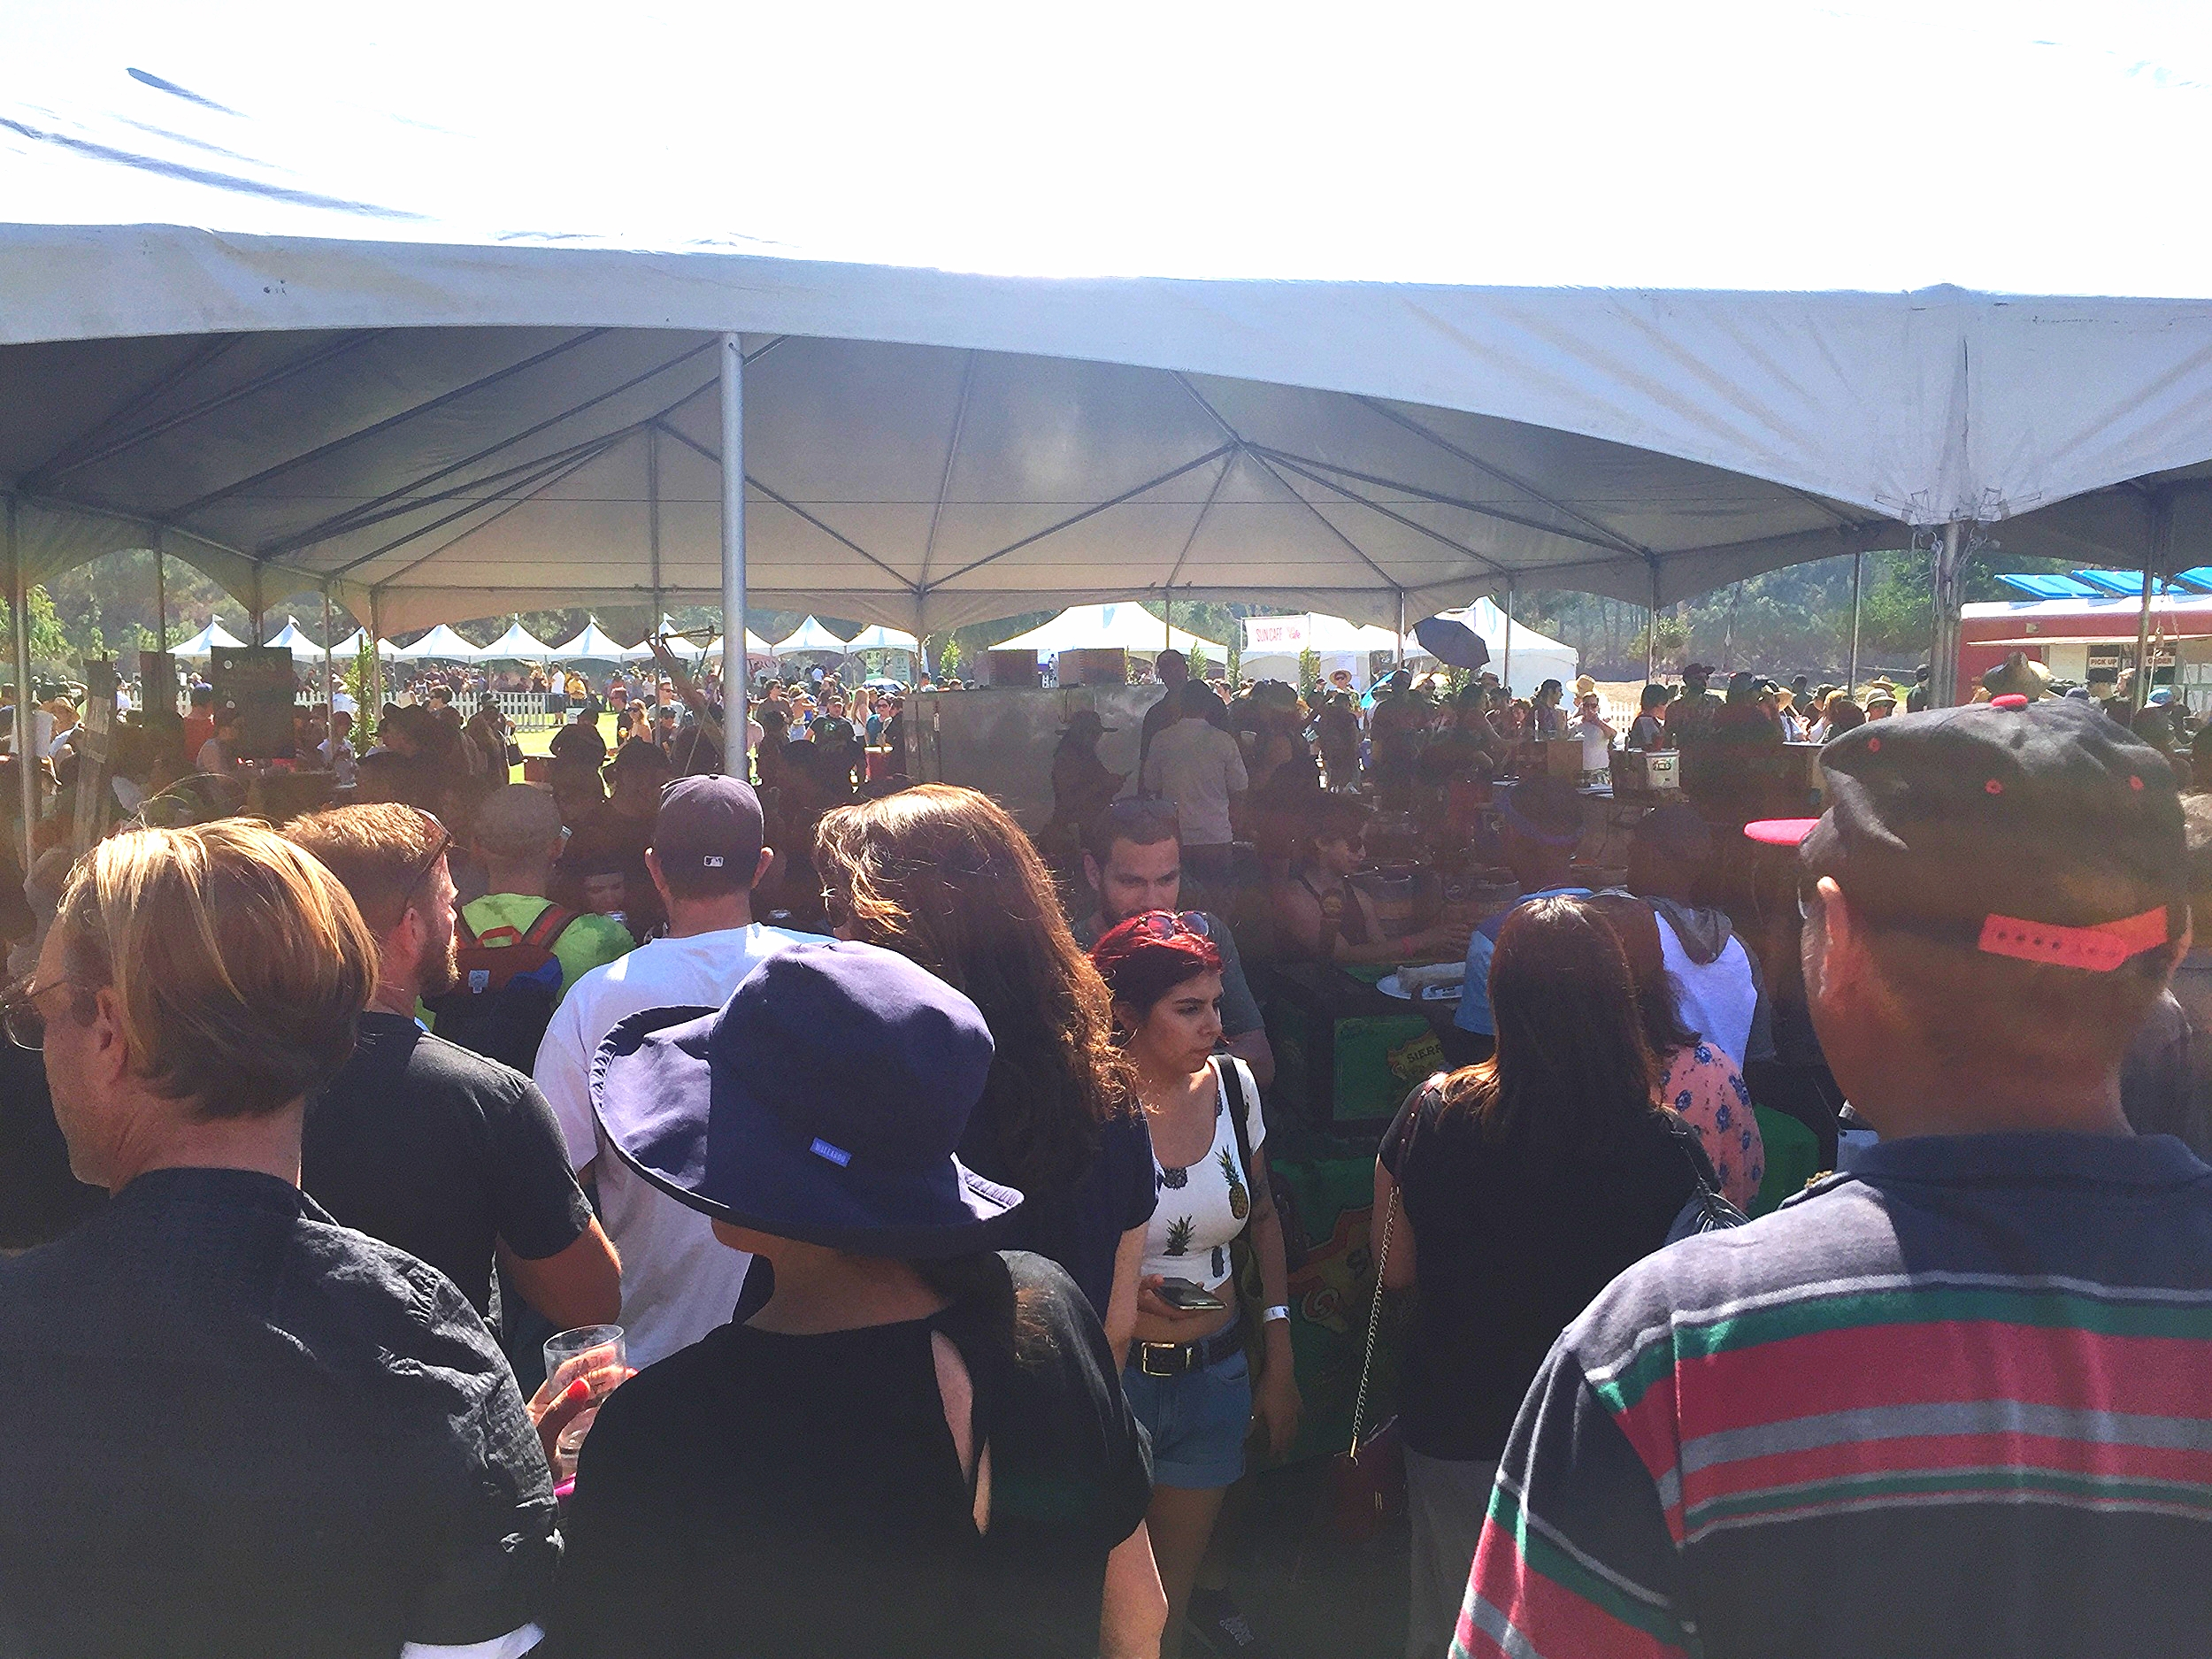 One of the many beer tents